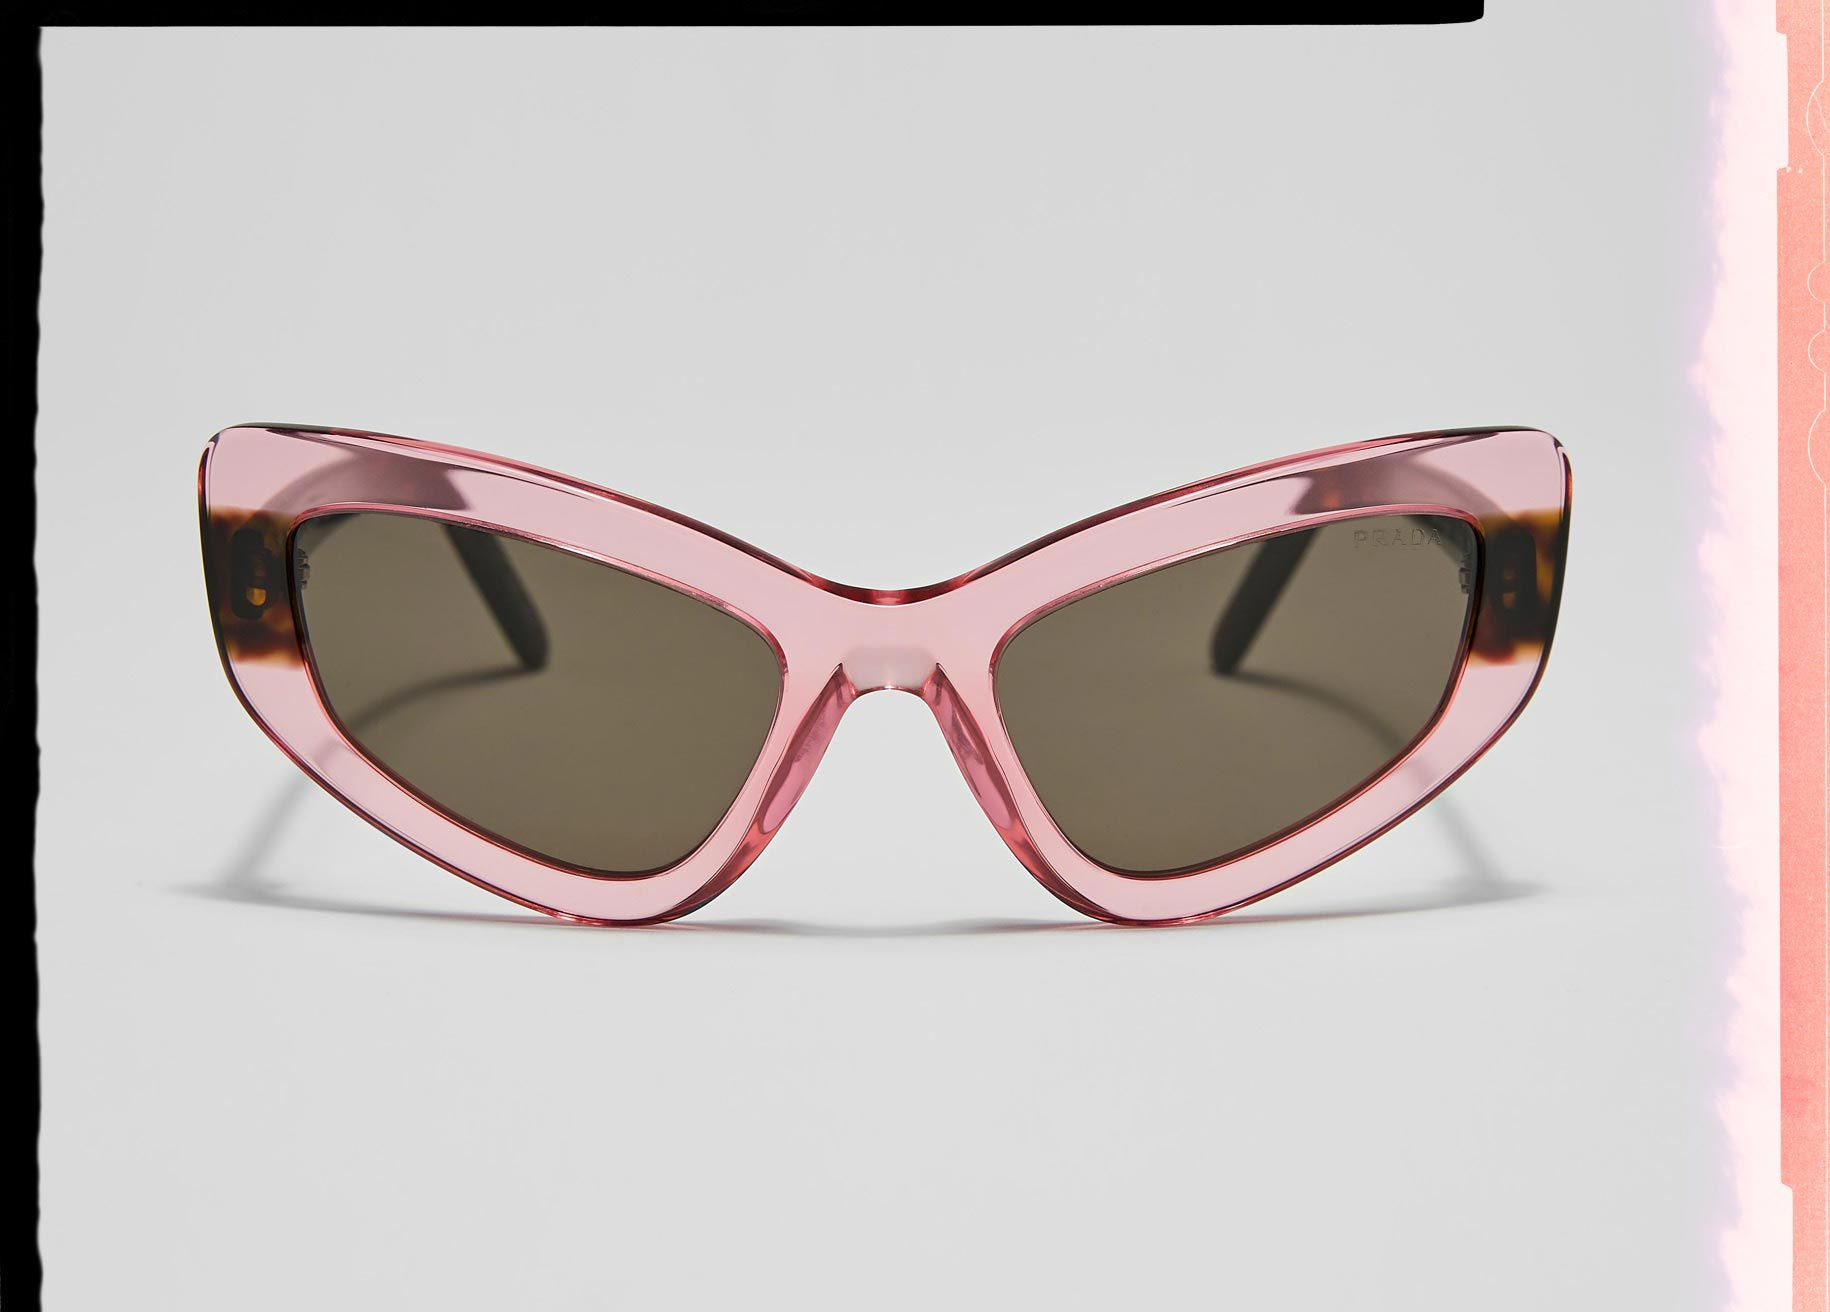 82aed157aa6 Trending Sunglasses for Women - Logomania